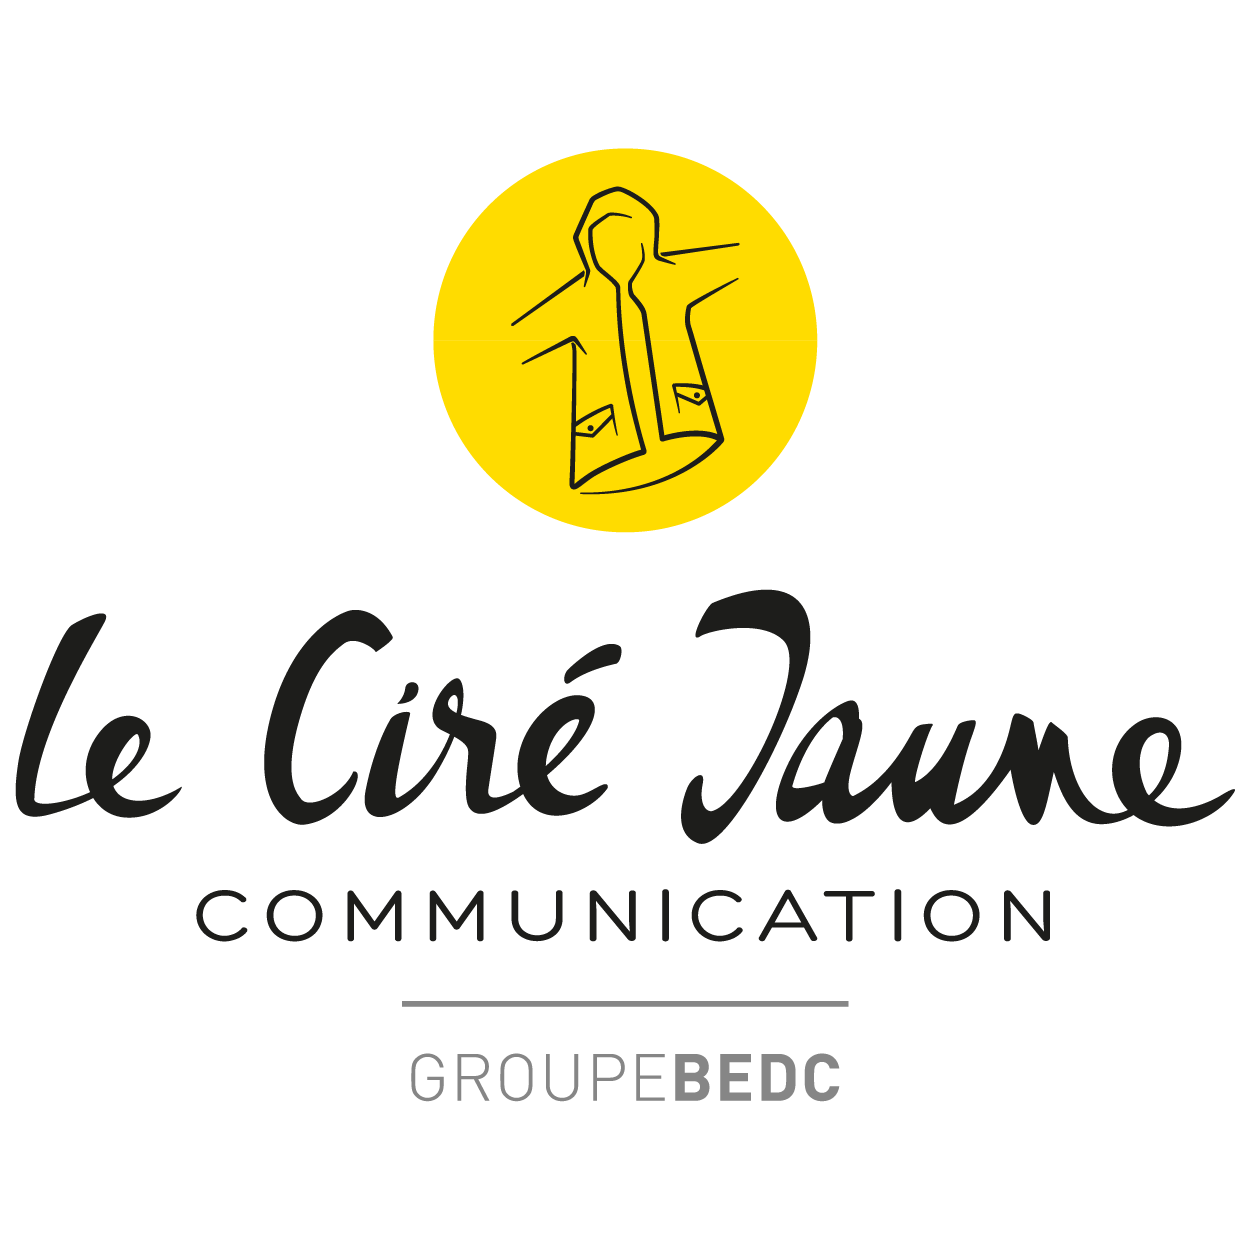 Logo de l'agence de communication Le Ciré jaune Communication